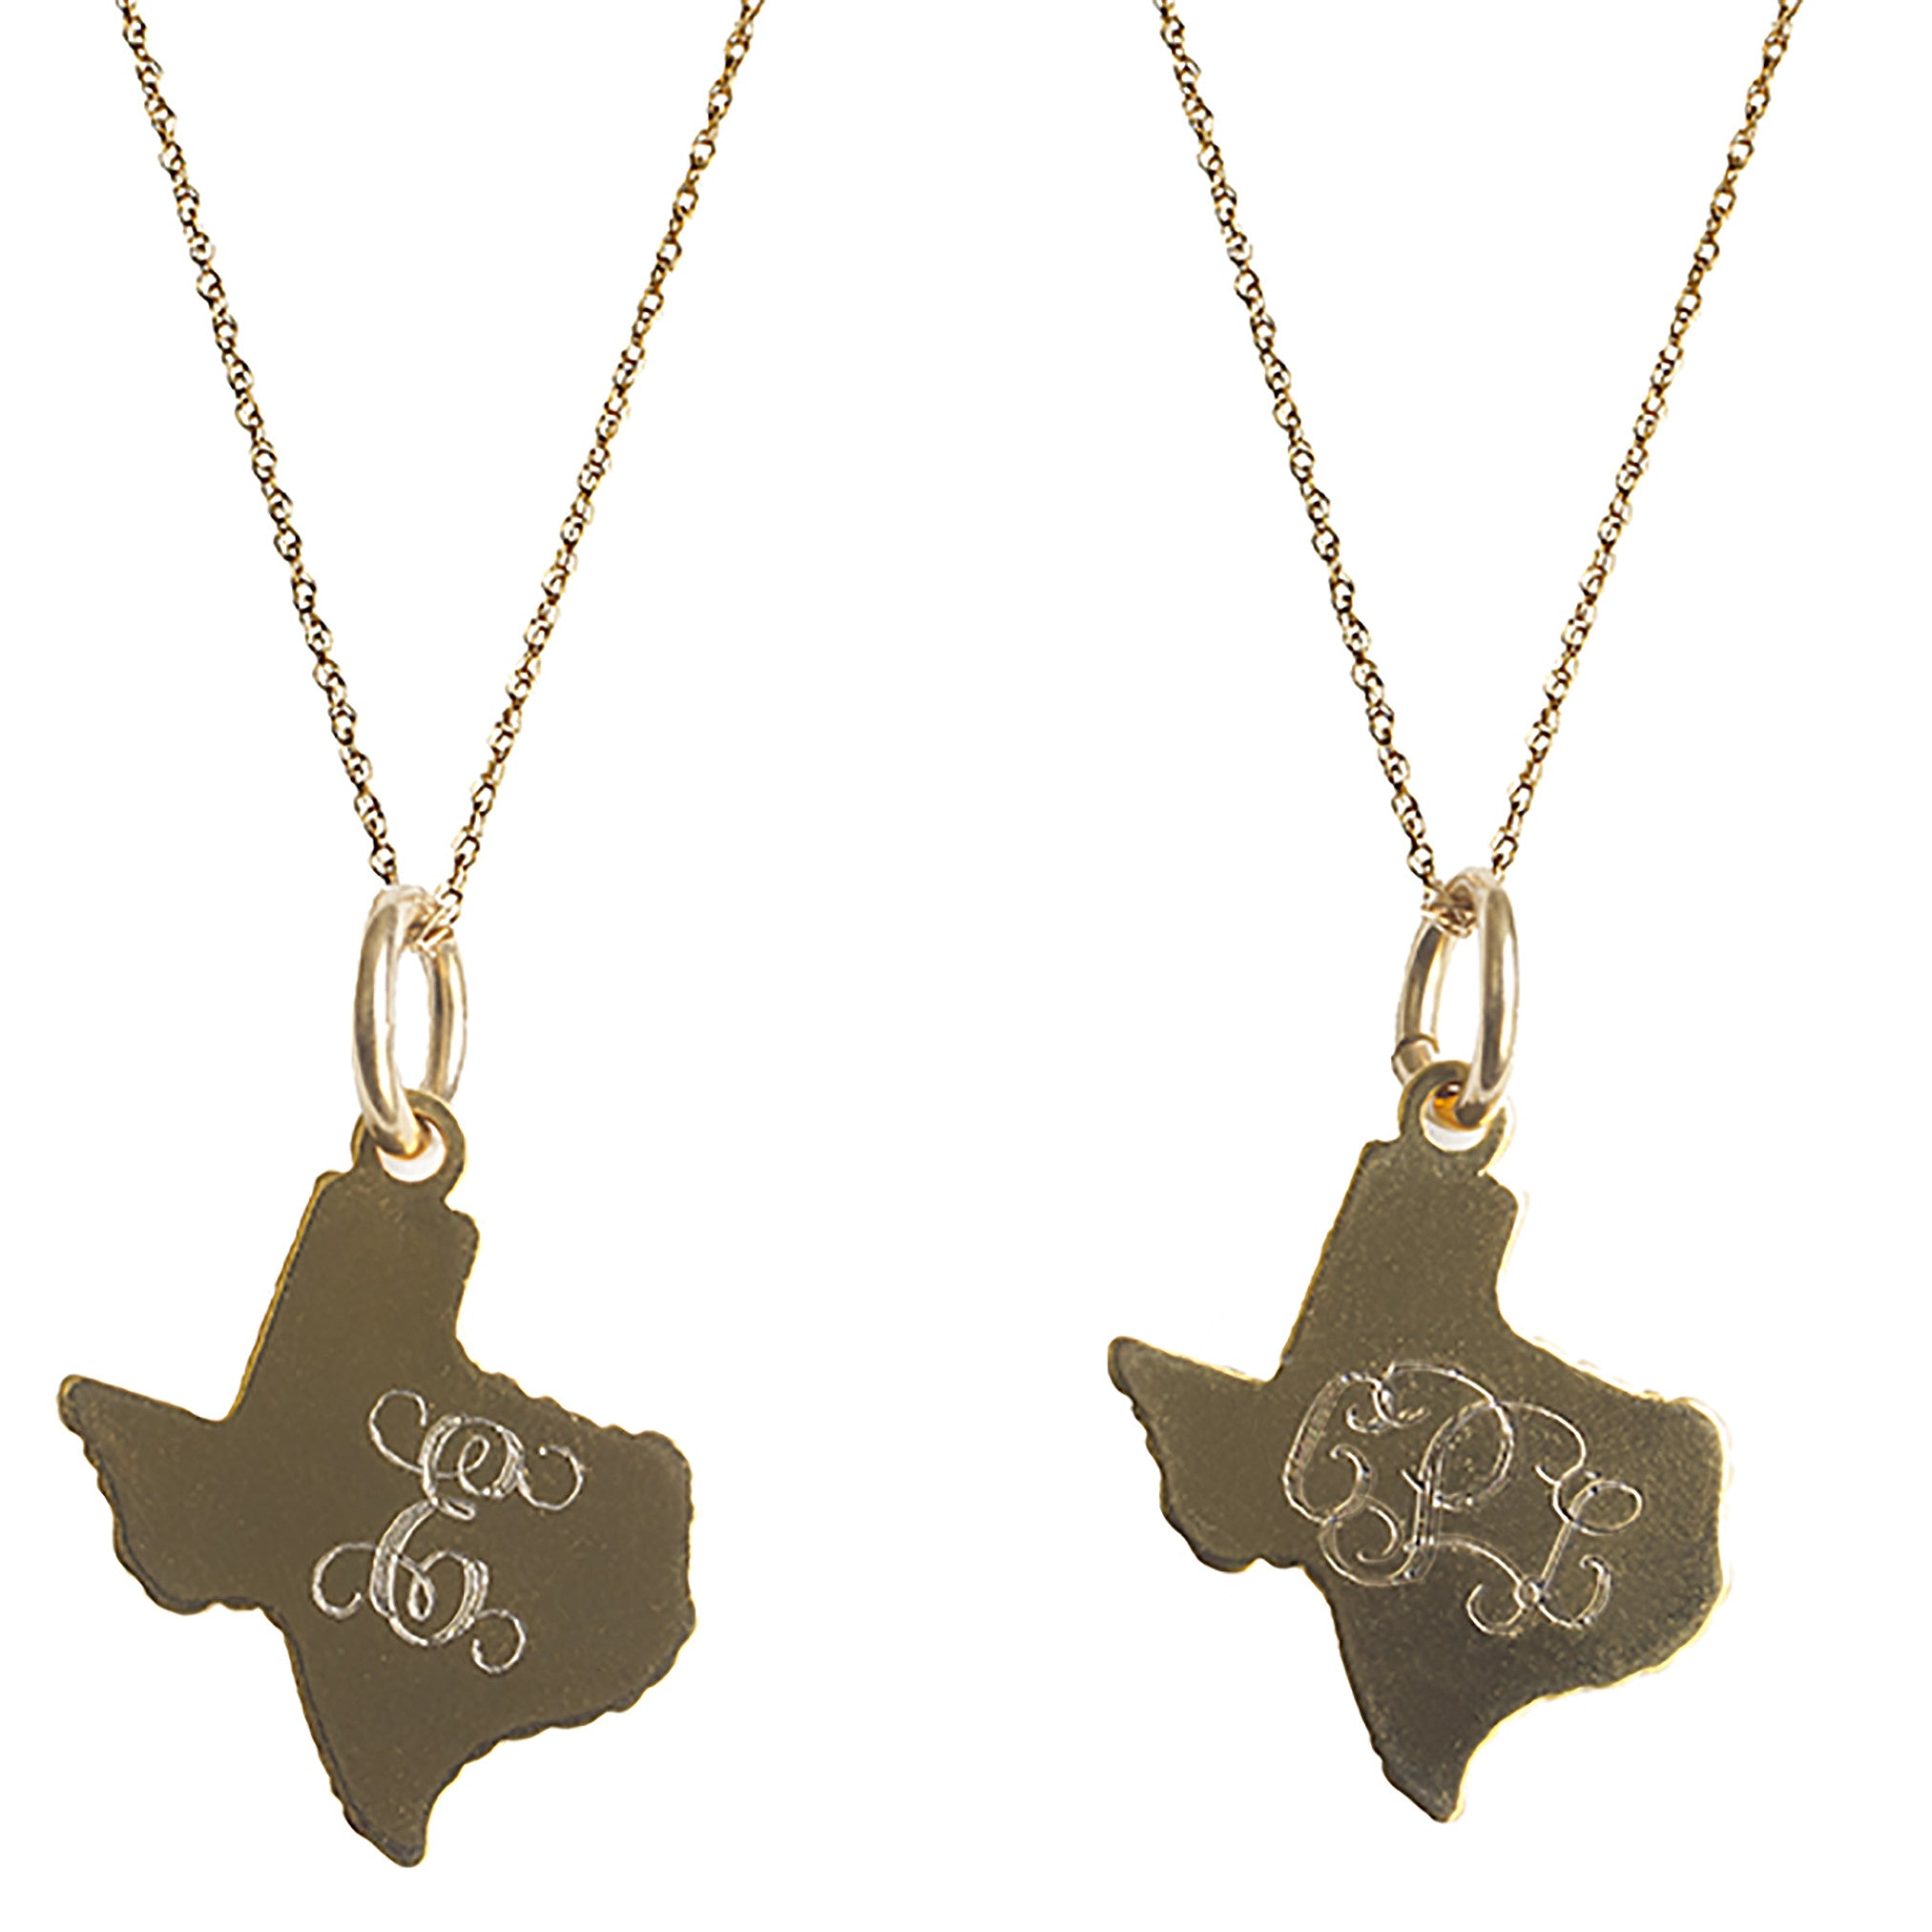 Texas pendant golden thread inc texas pendant mozeypictures Choice Image